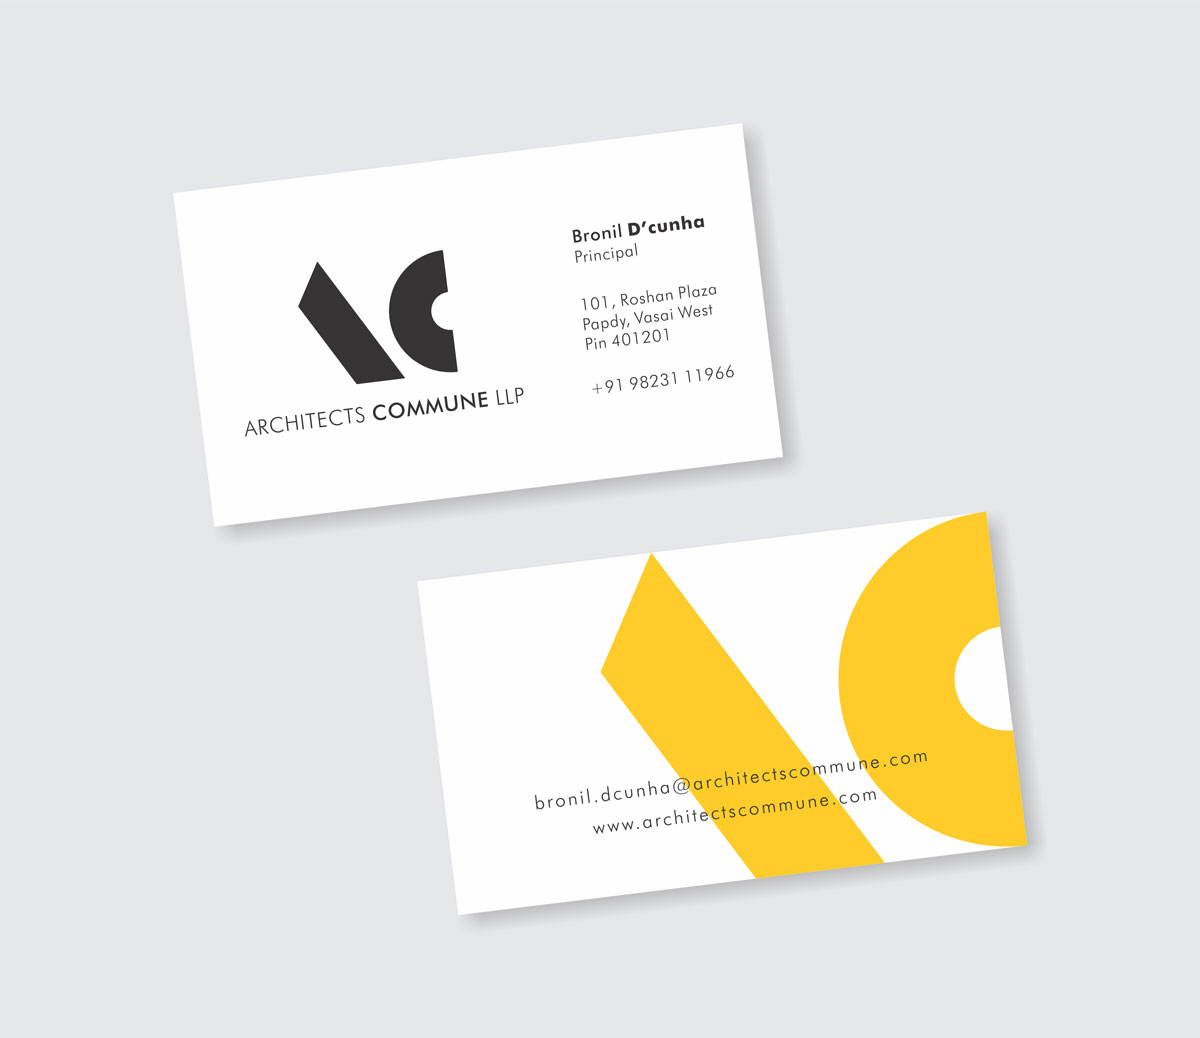 business card design, visiting card design for architect